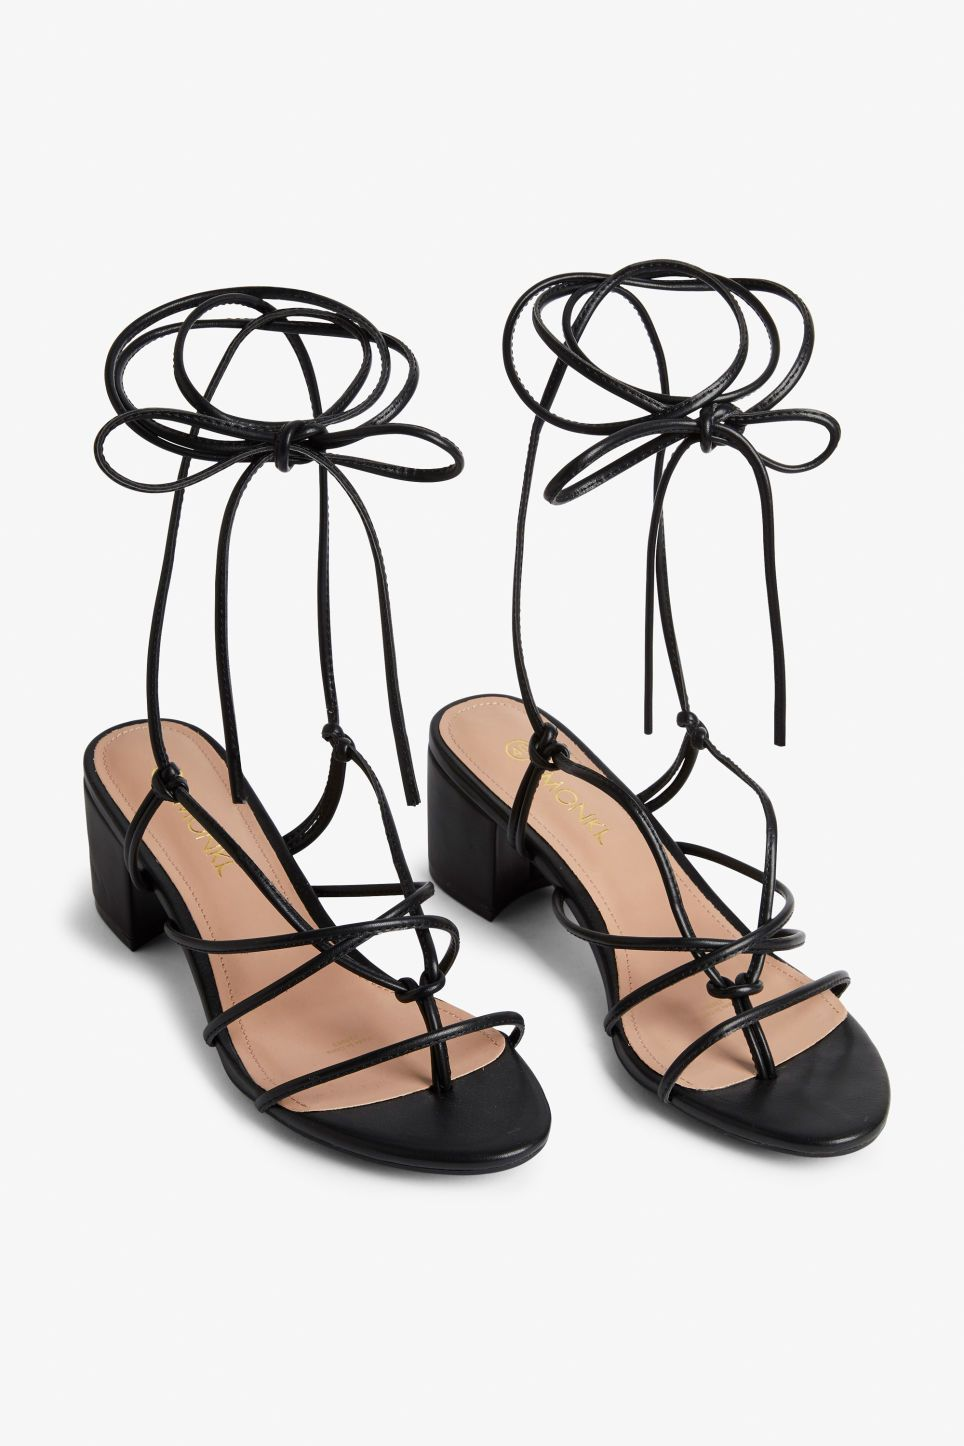 f932ac28e4aee6 A pair of heeled ankle-wrap sandals made from faux leather. Yaas! Heel  height  6